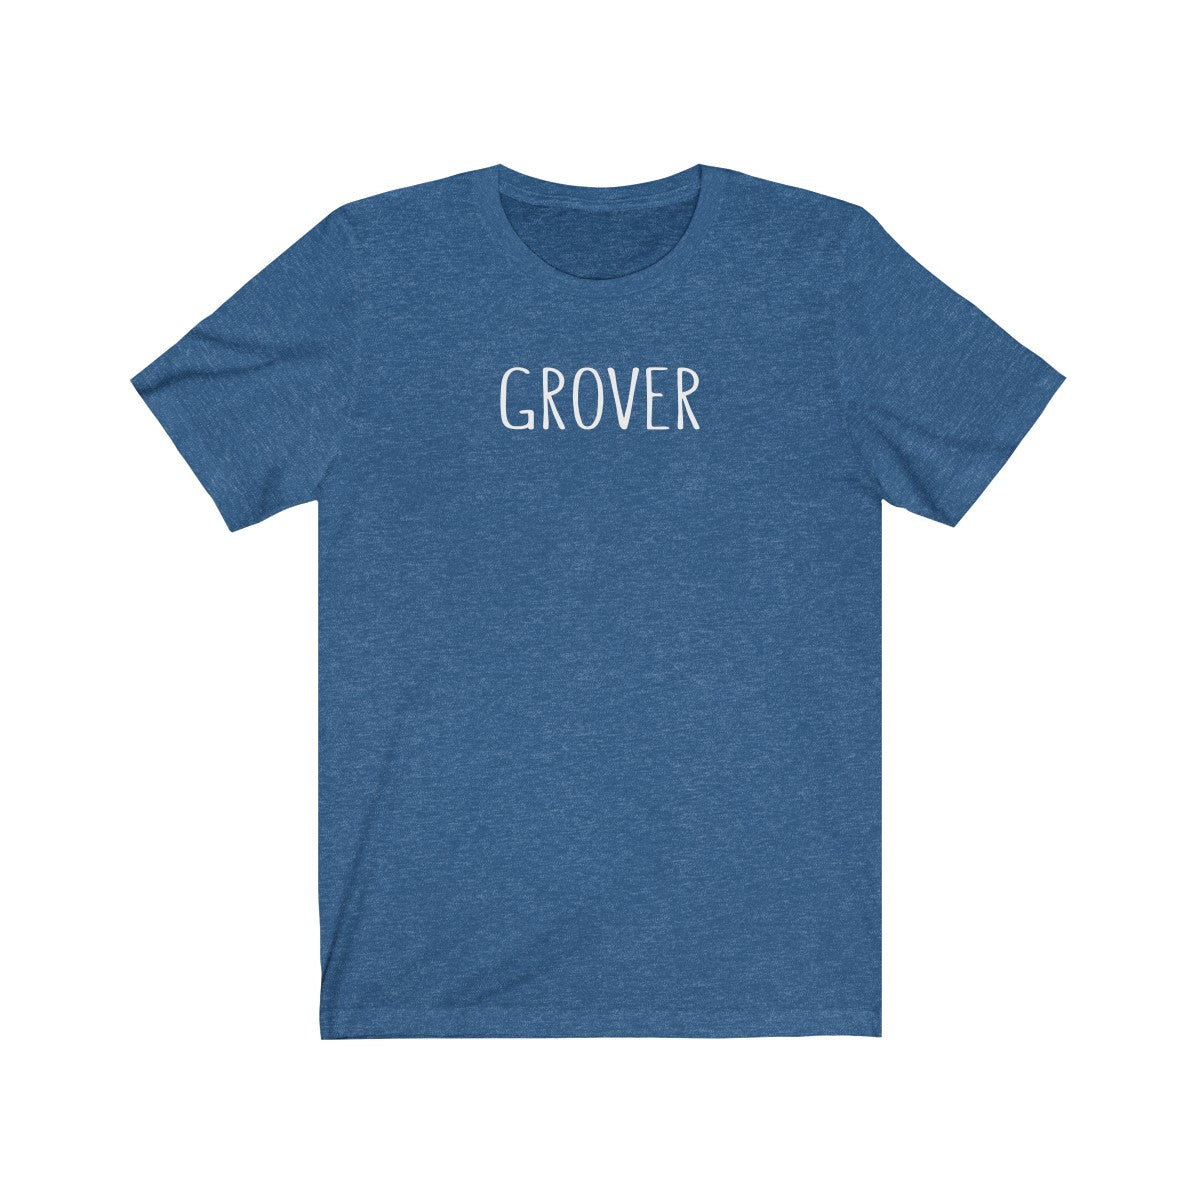 Grover Short Sleeve Tee: Multiple Colors